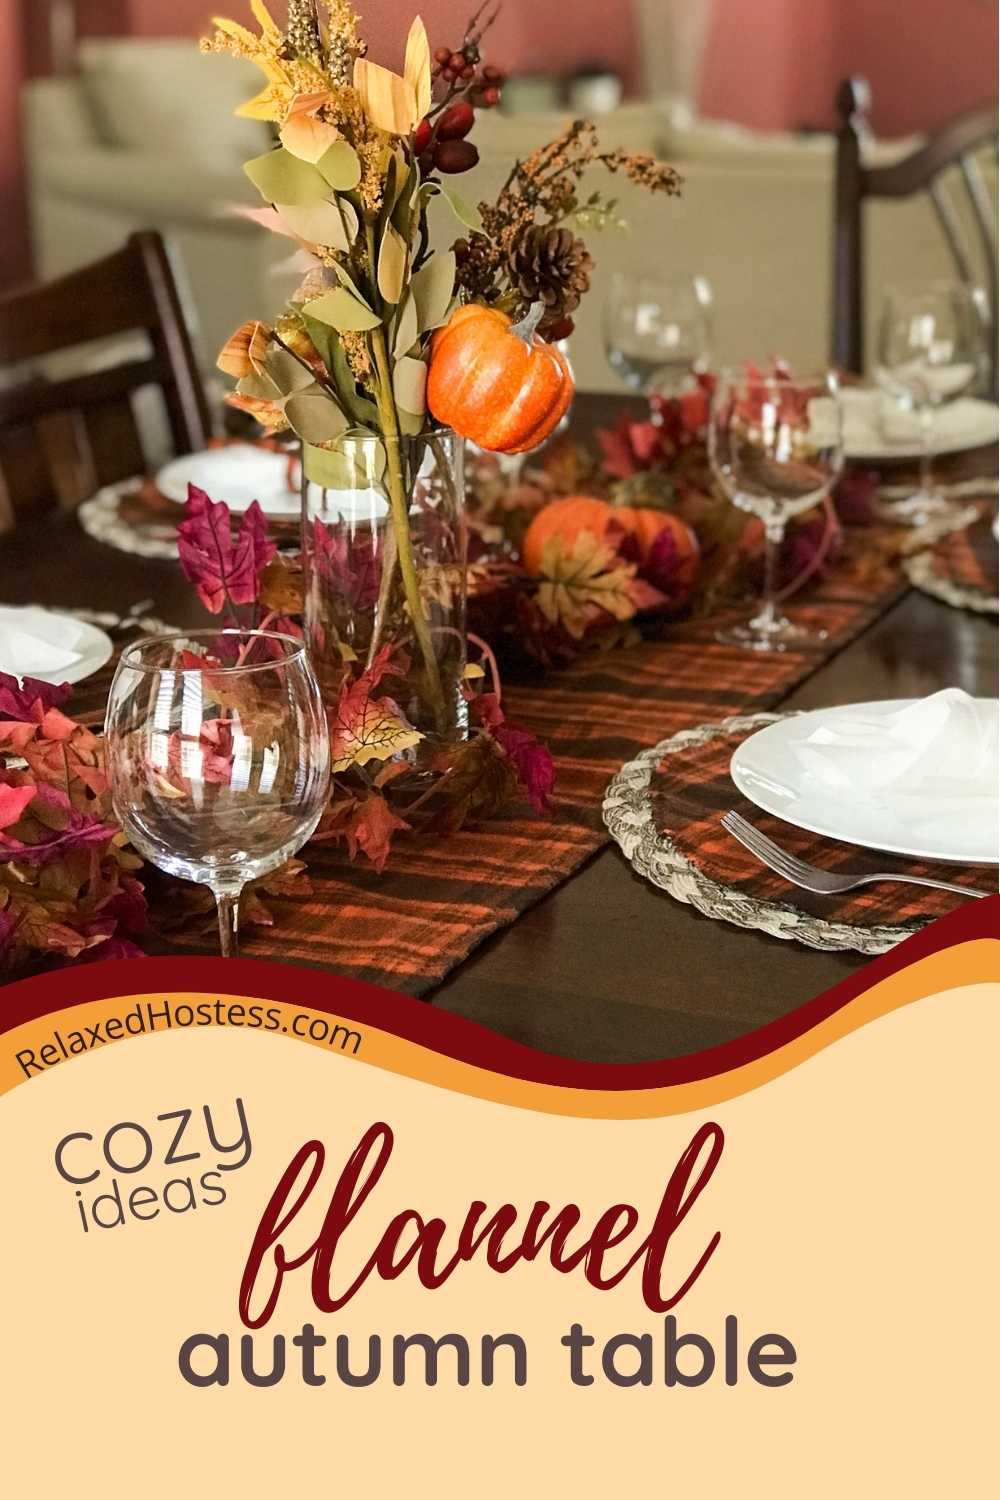 Flannel fall dinner table. Flannel table runner, round flannel place mats, white plates, wine glasses, autumn centerpiece.